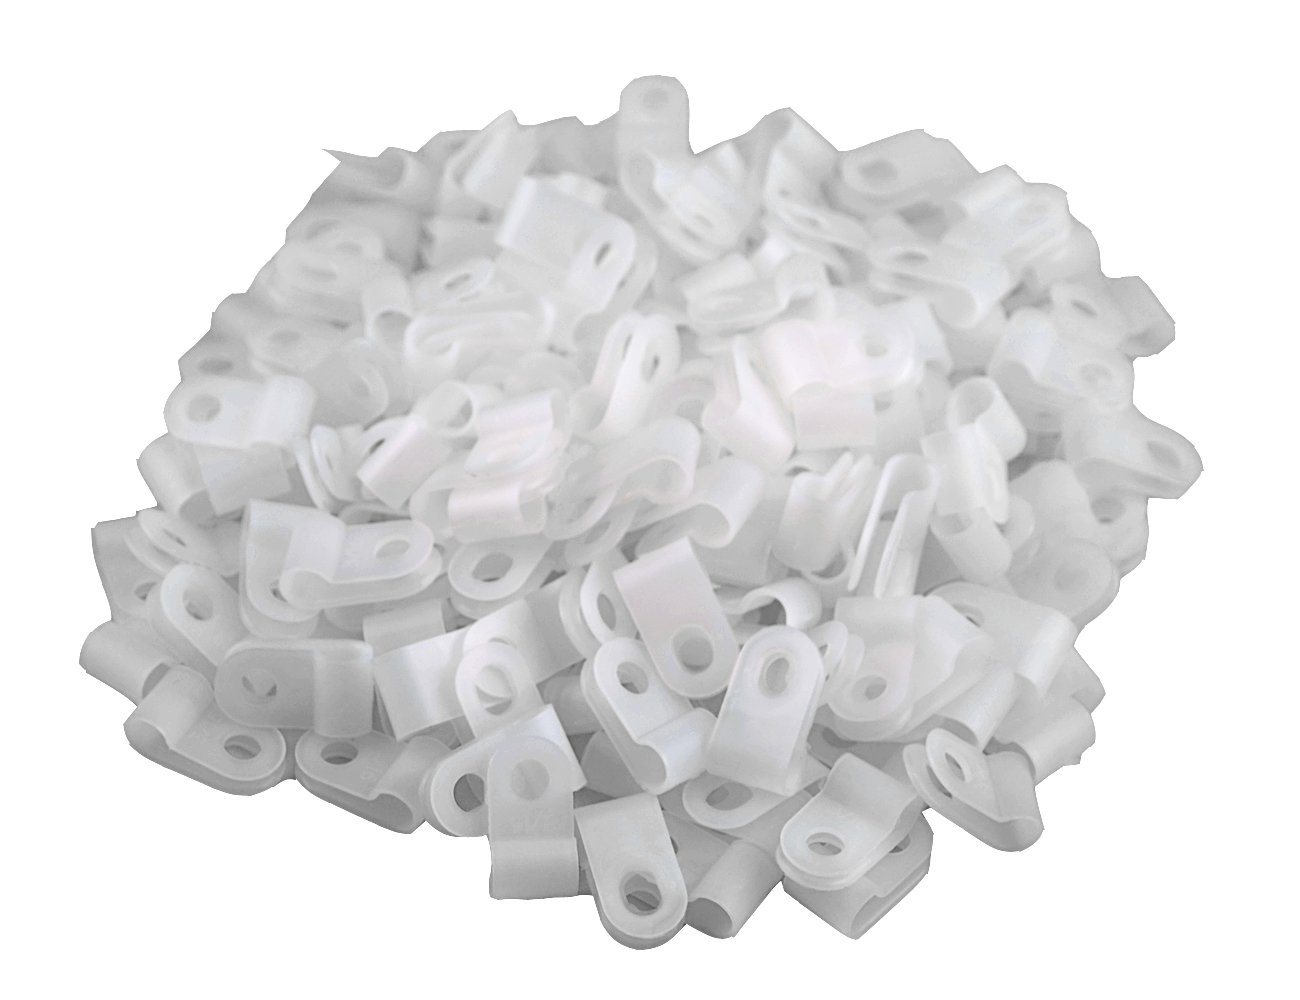 XLX 200pcs White Nylon R-Type Cable Clamp Fastener for 1/8 Inch (3.2mm) Dia Wire Tube ( Plastic Wire Cord Clip Fixer )